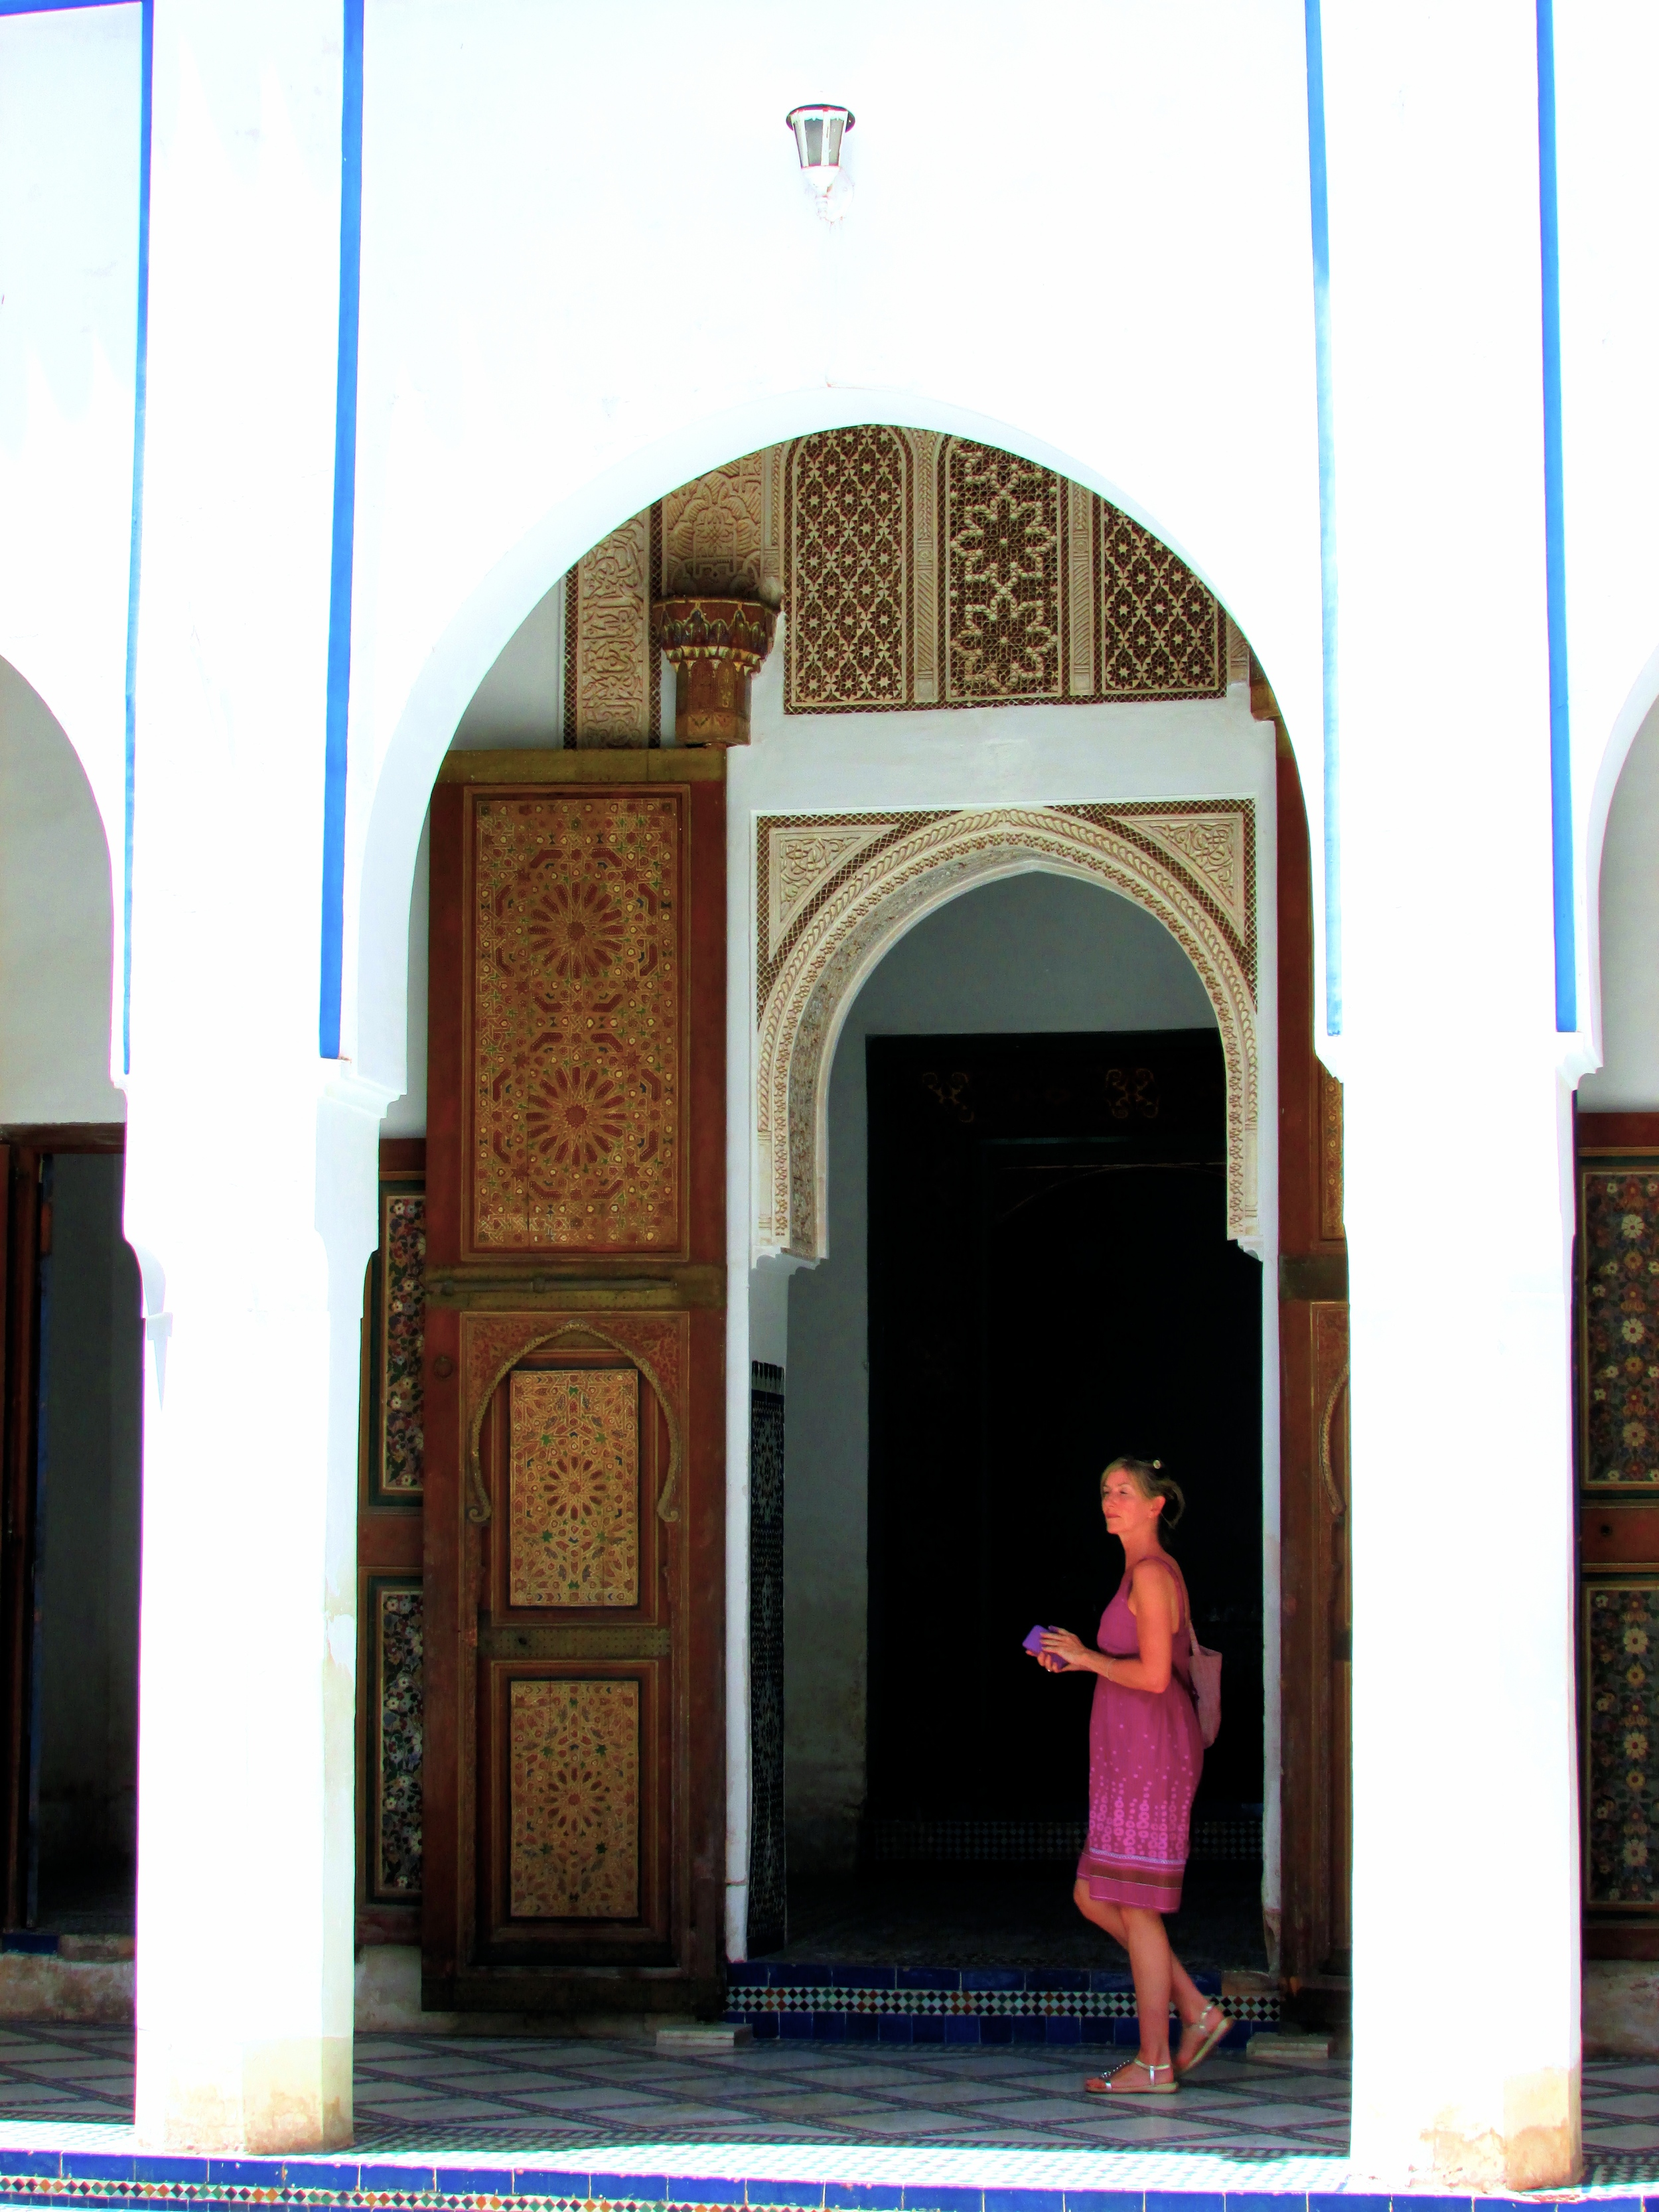 A fellow tourist enthralled with the tiles, painting and elaborate carving at a historic palace in Morocco